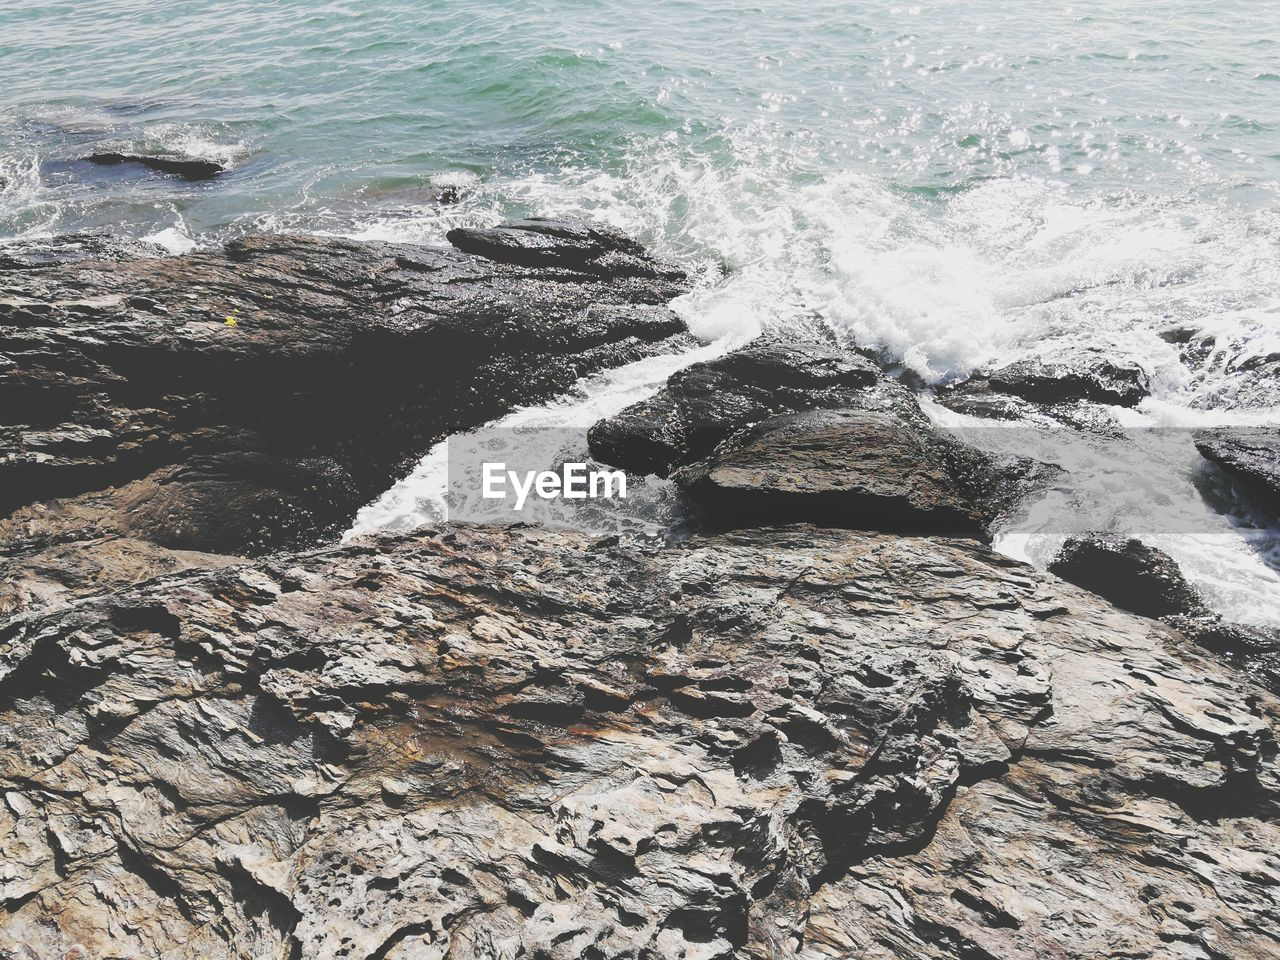 motion, water, nature, rock - object, beauty in nature, no people, day, outdoors, sea, wave, power in nature, scenics, force